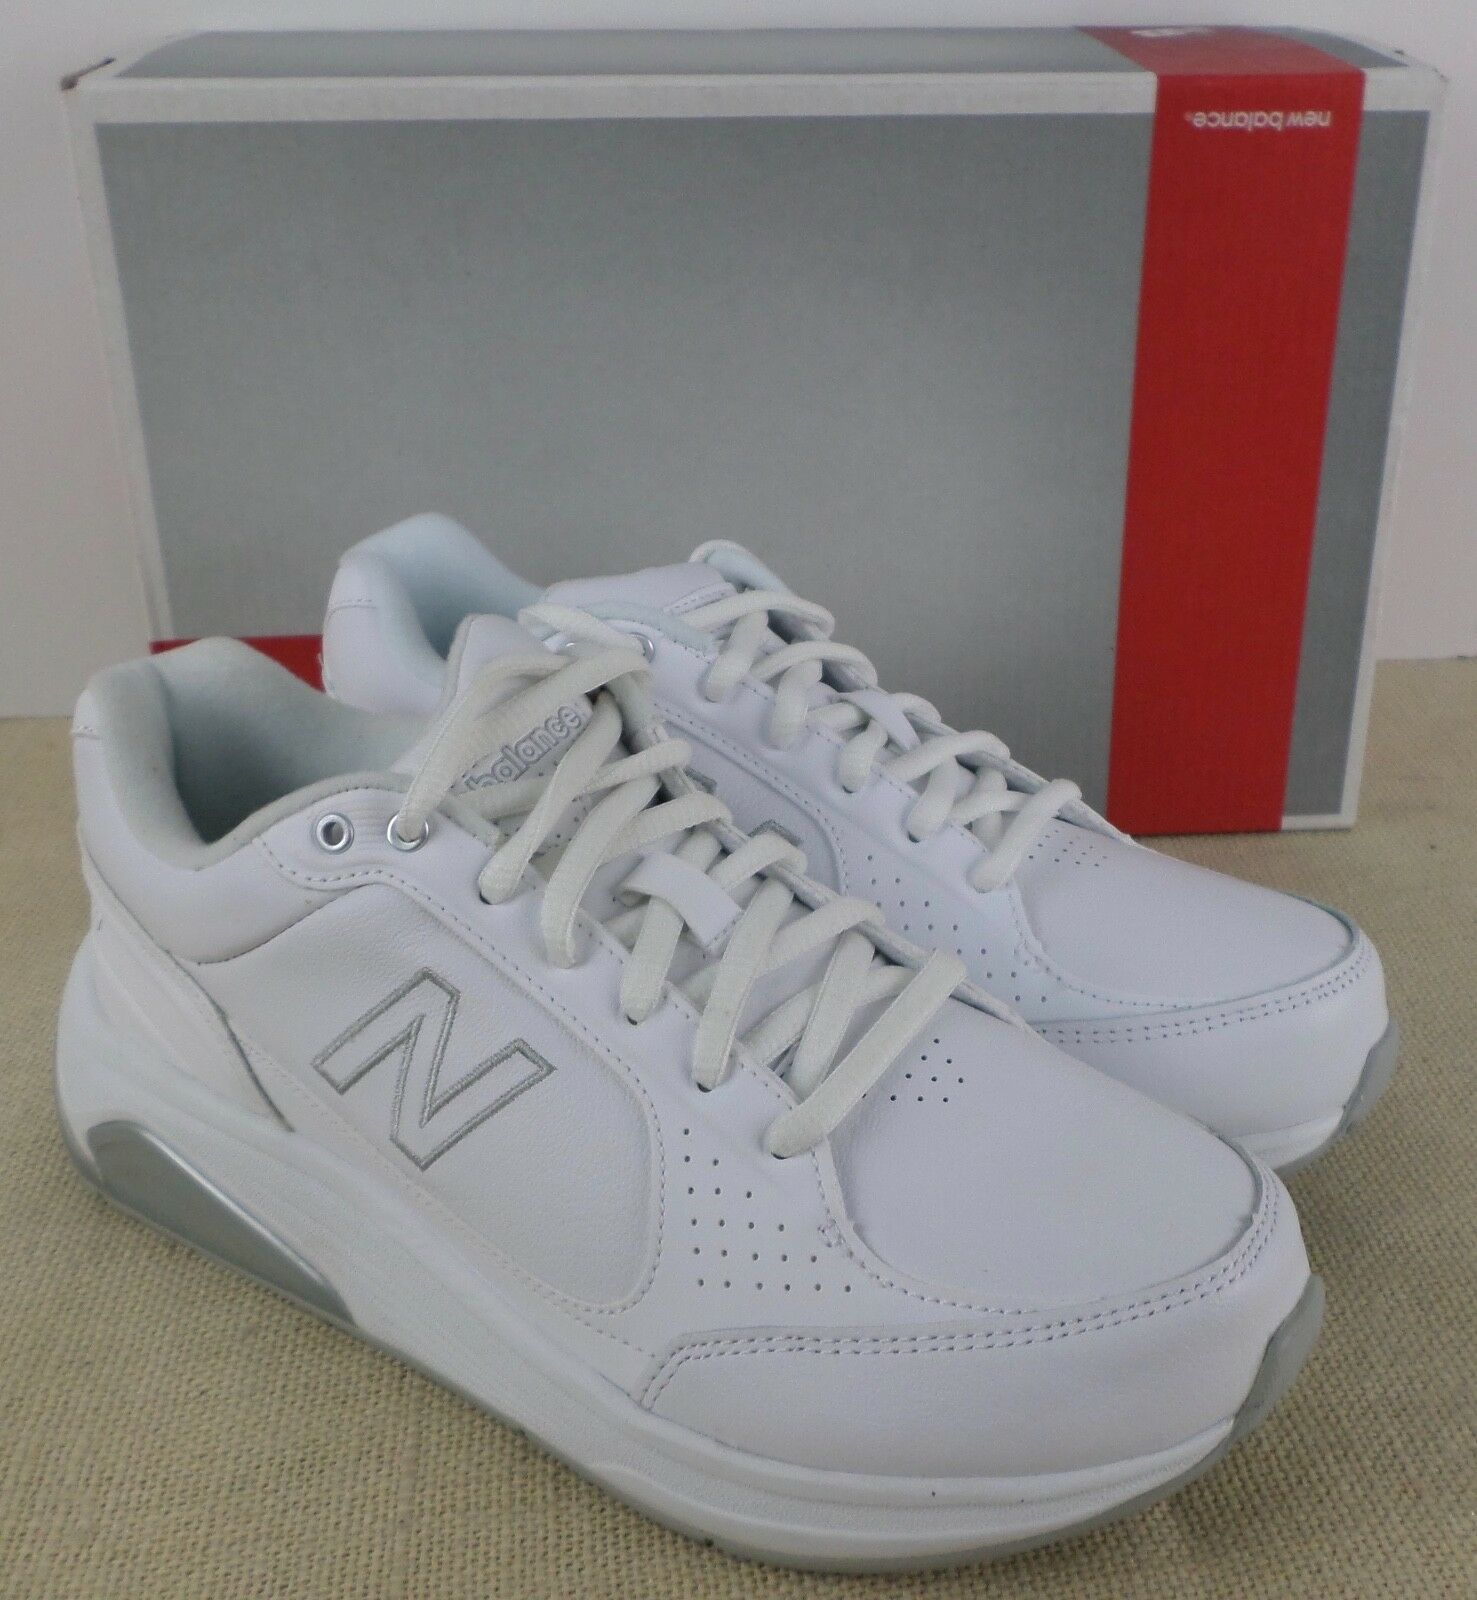 NEW BALANCE WW928WT WOMEN'S WHITE WALKING ATHLETIC SNEAKERS NEW IN BOX